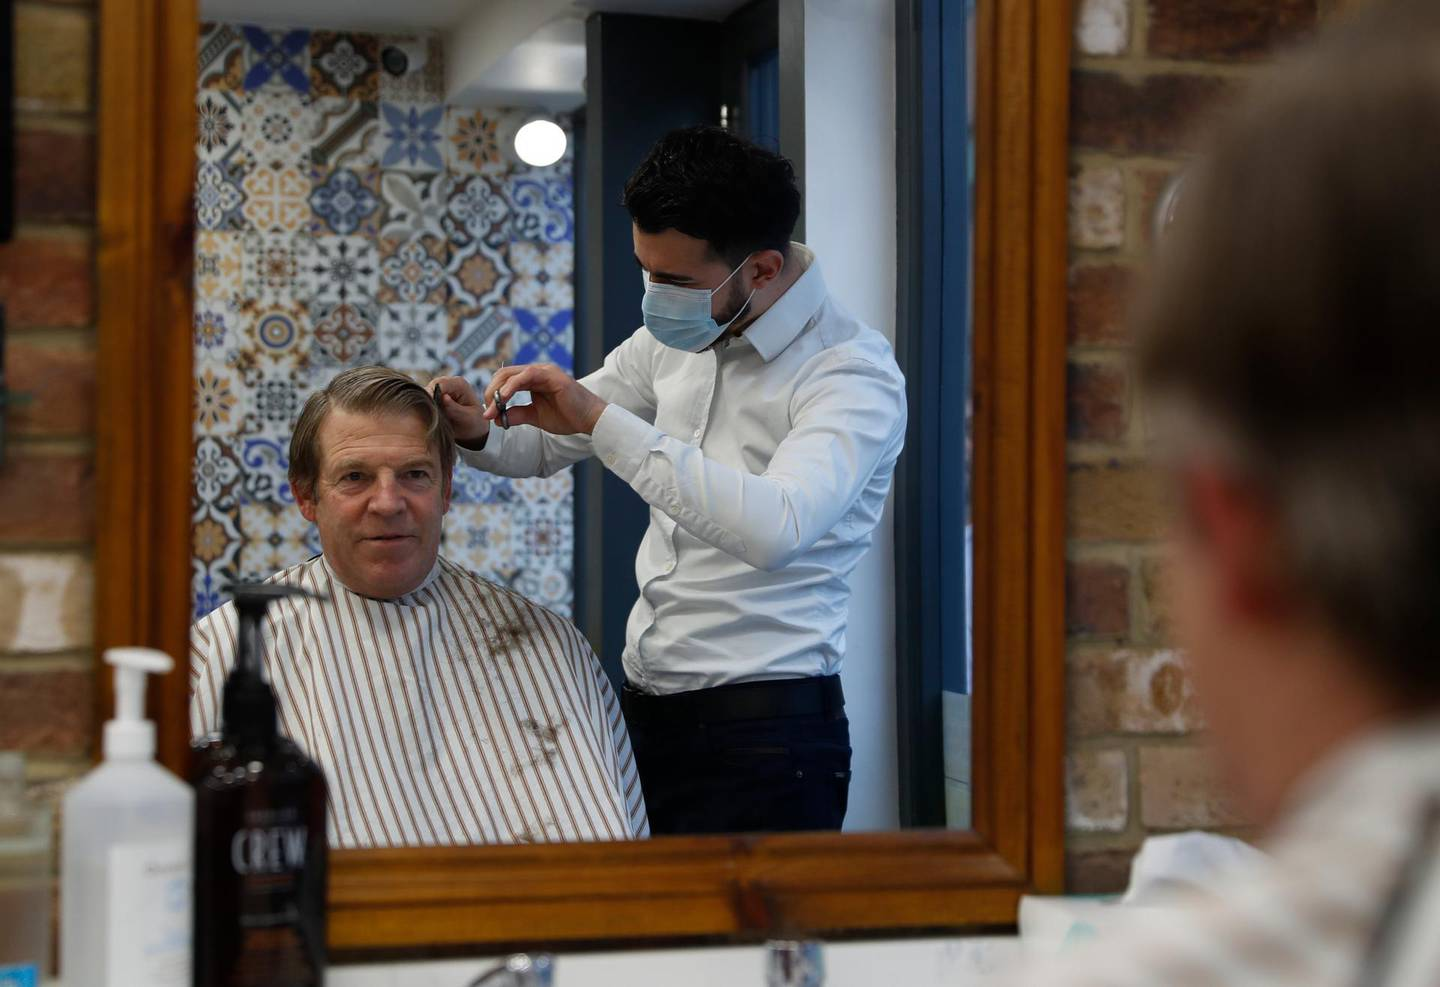 The Lord Mayor of London William Russell gets his hair cut by Ali Baltar, owner of the Grooming Lounge in the City of London, Monday, April 12, 2021. Millions of people in England will get their first chance in months for haircuts, casual shopping and restaurant meals on Monday, as the government takes the next step on its lockdown-lifting road map. (AP Photo/Alastair Grant)